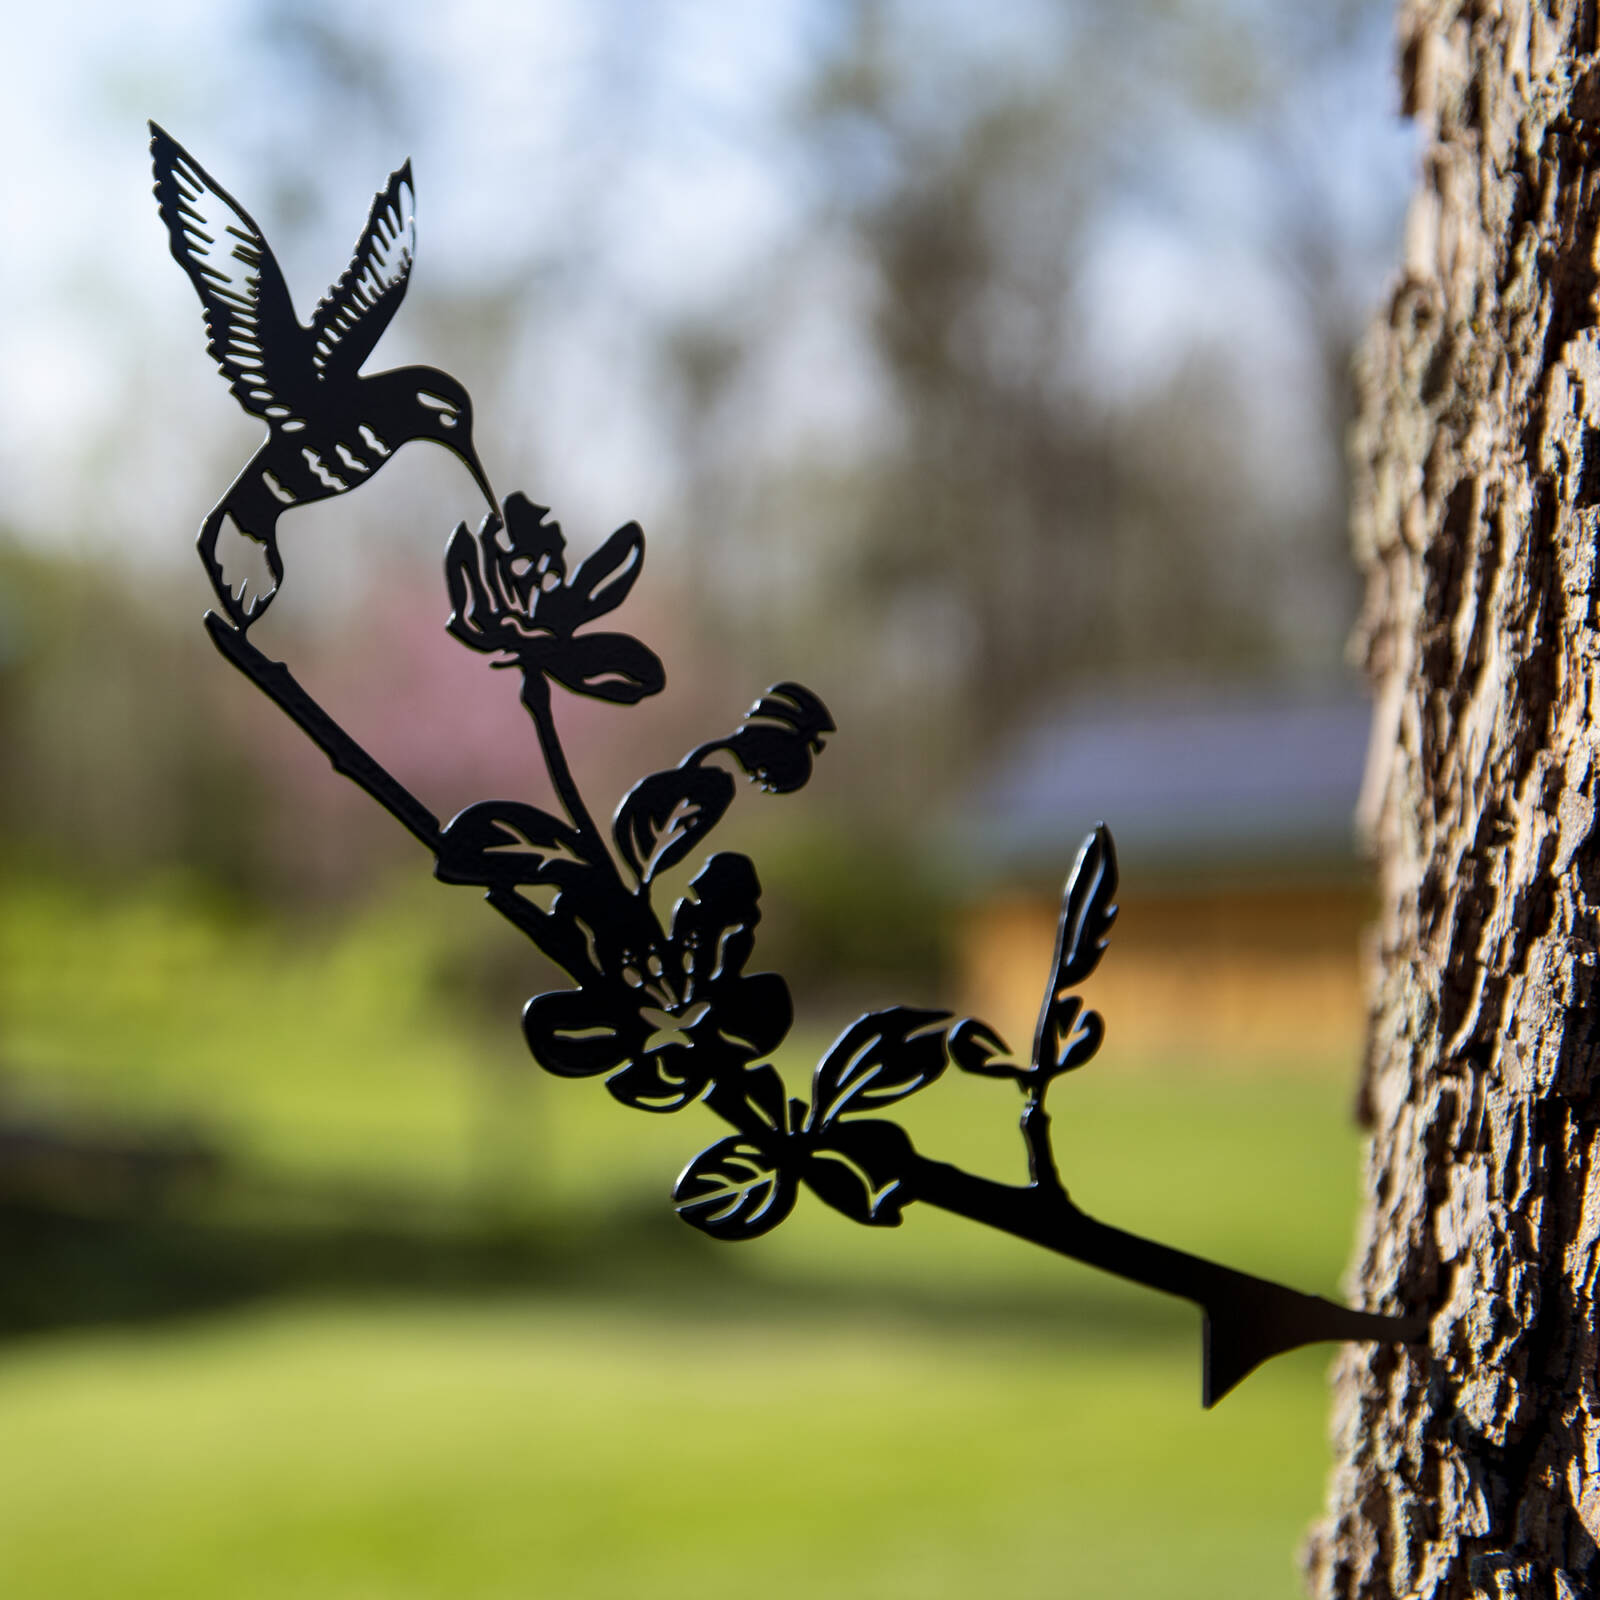 Decorative metal hummingbird attached to tree product photo by Robintek Photography